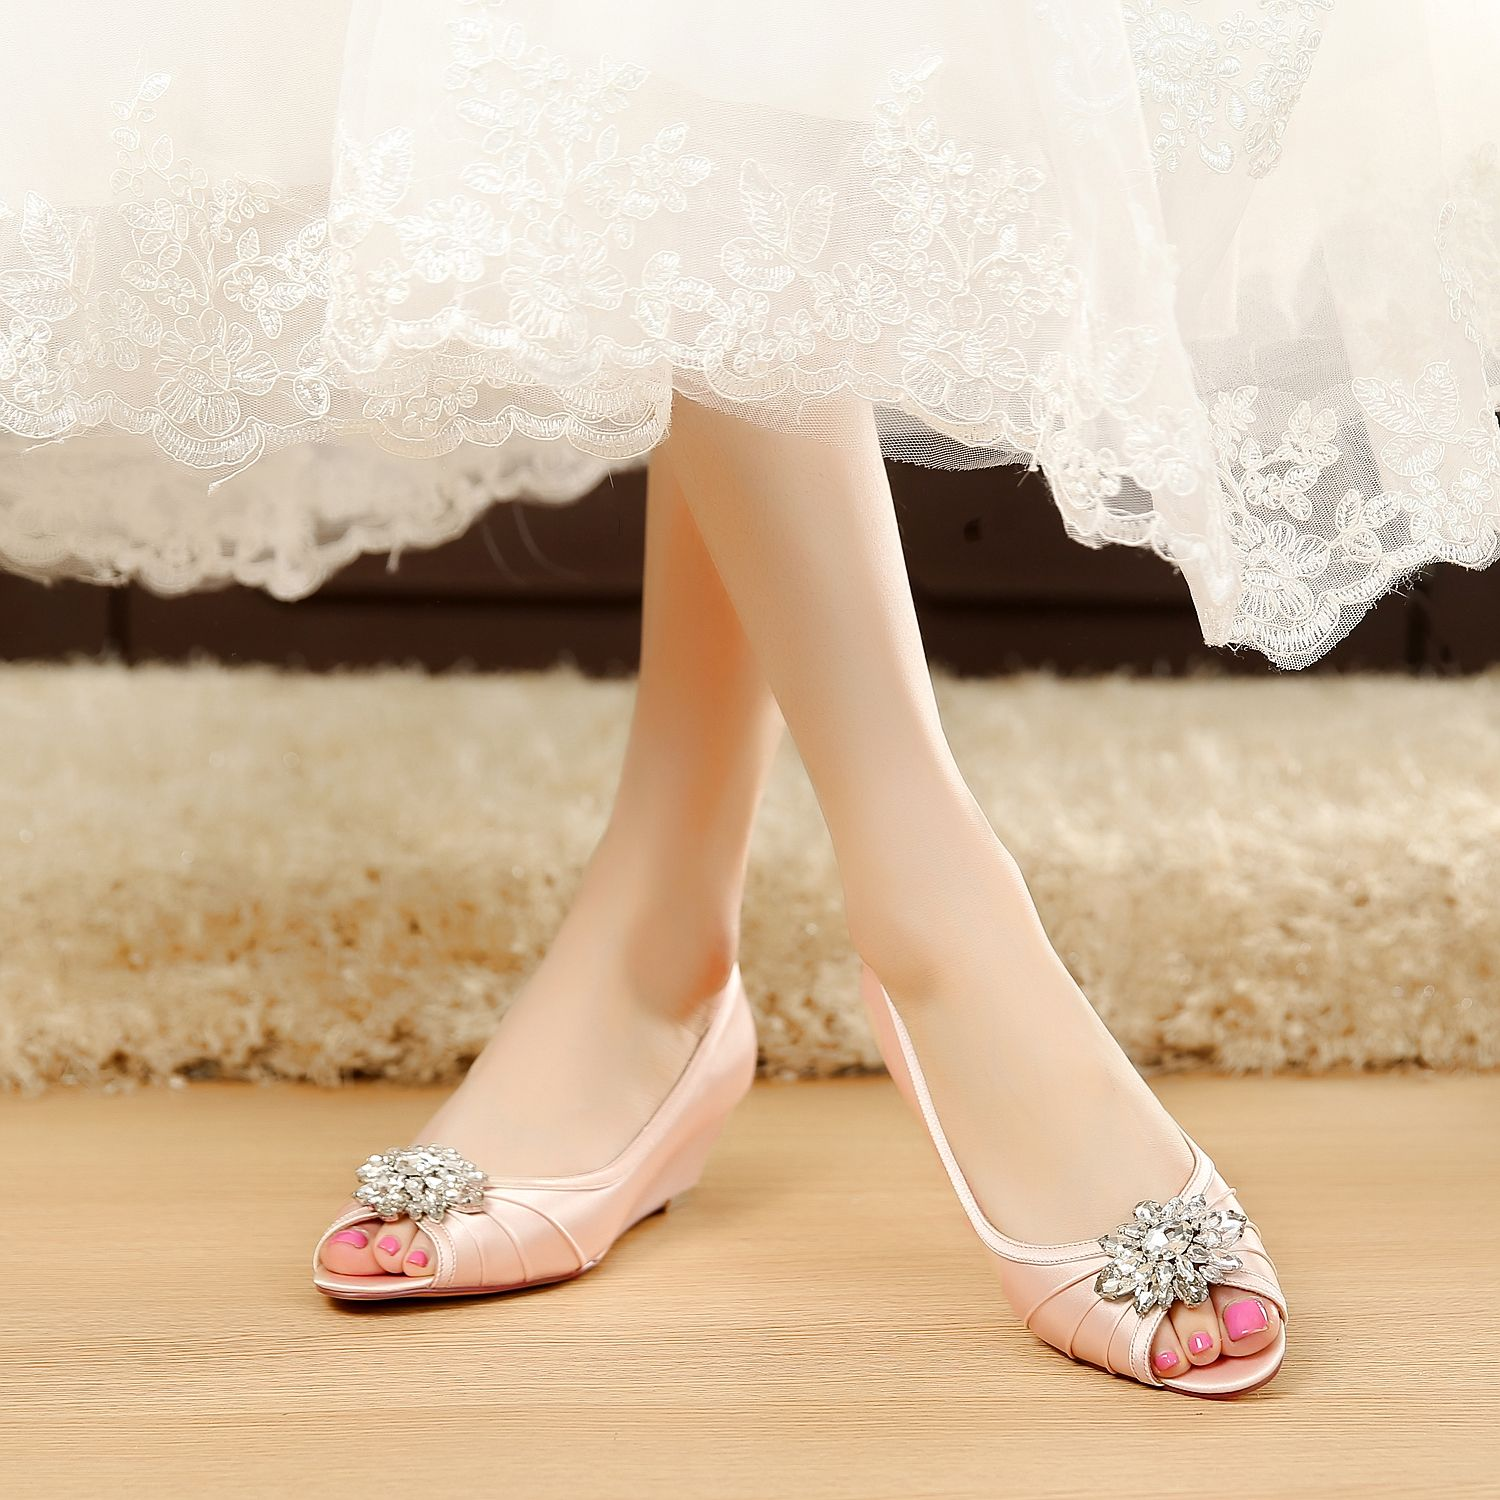 heels summer arrive women comfortable bowknot high wedge in spring from shallow pumps elegant shoes round item comforter morazora wedges new s toe